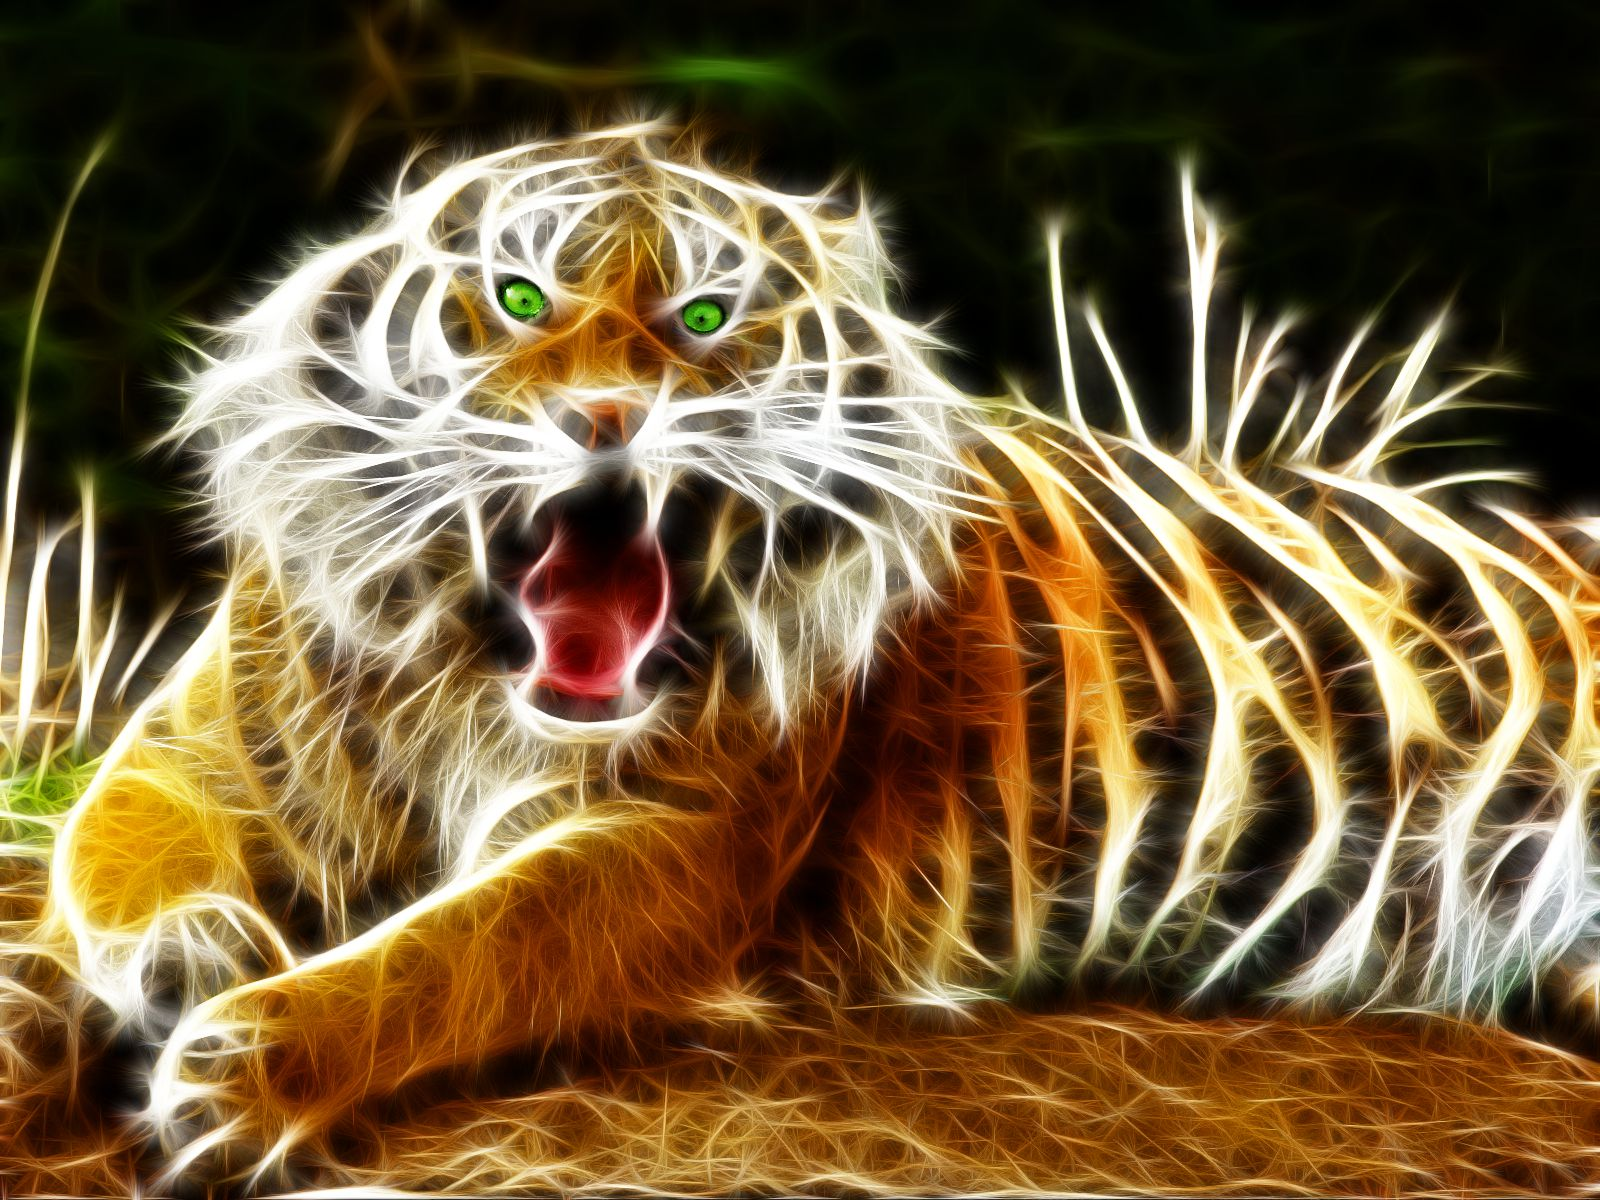 Fire Lion Hd Wallpaper Tigre 3d 1920x1080 Fonds D 233 Cran Hd